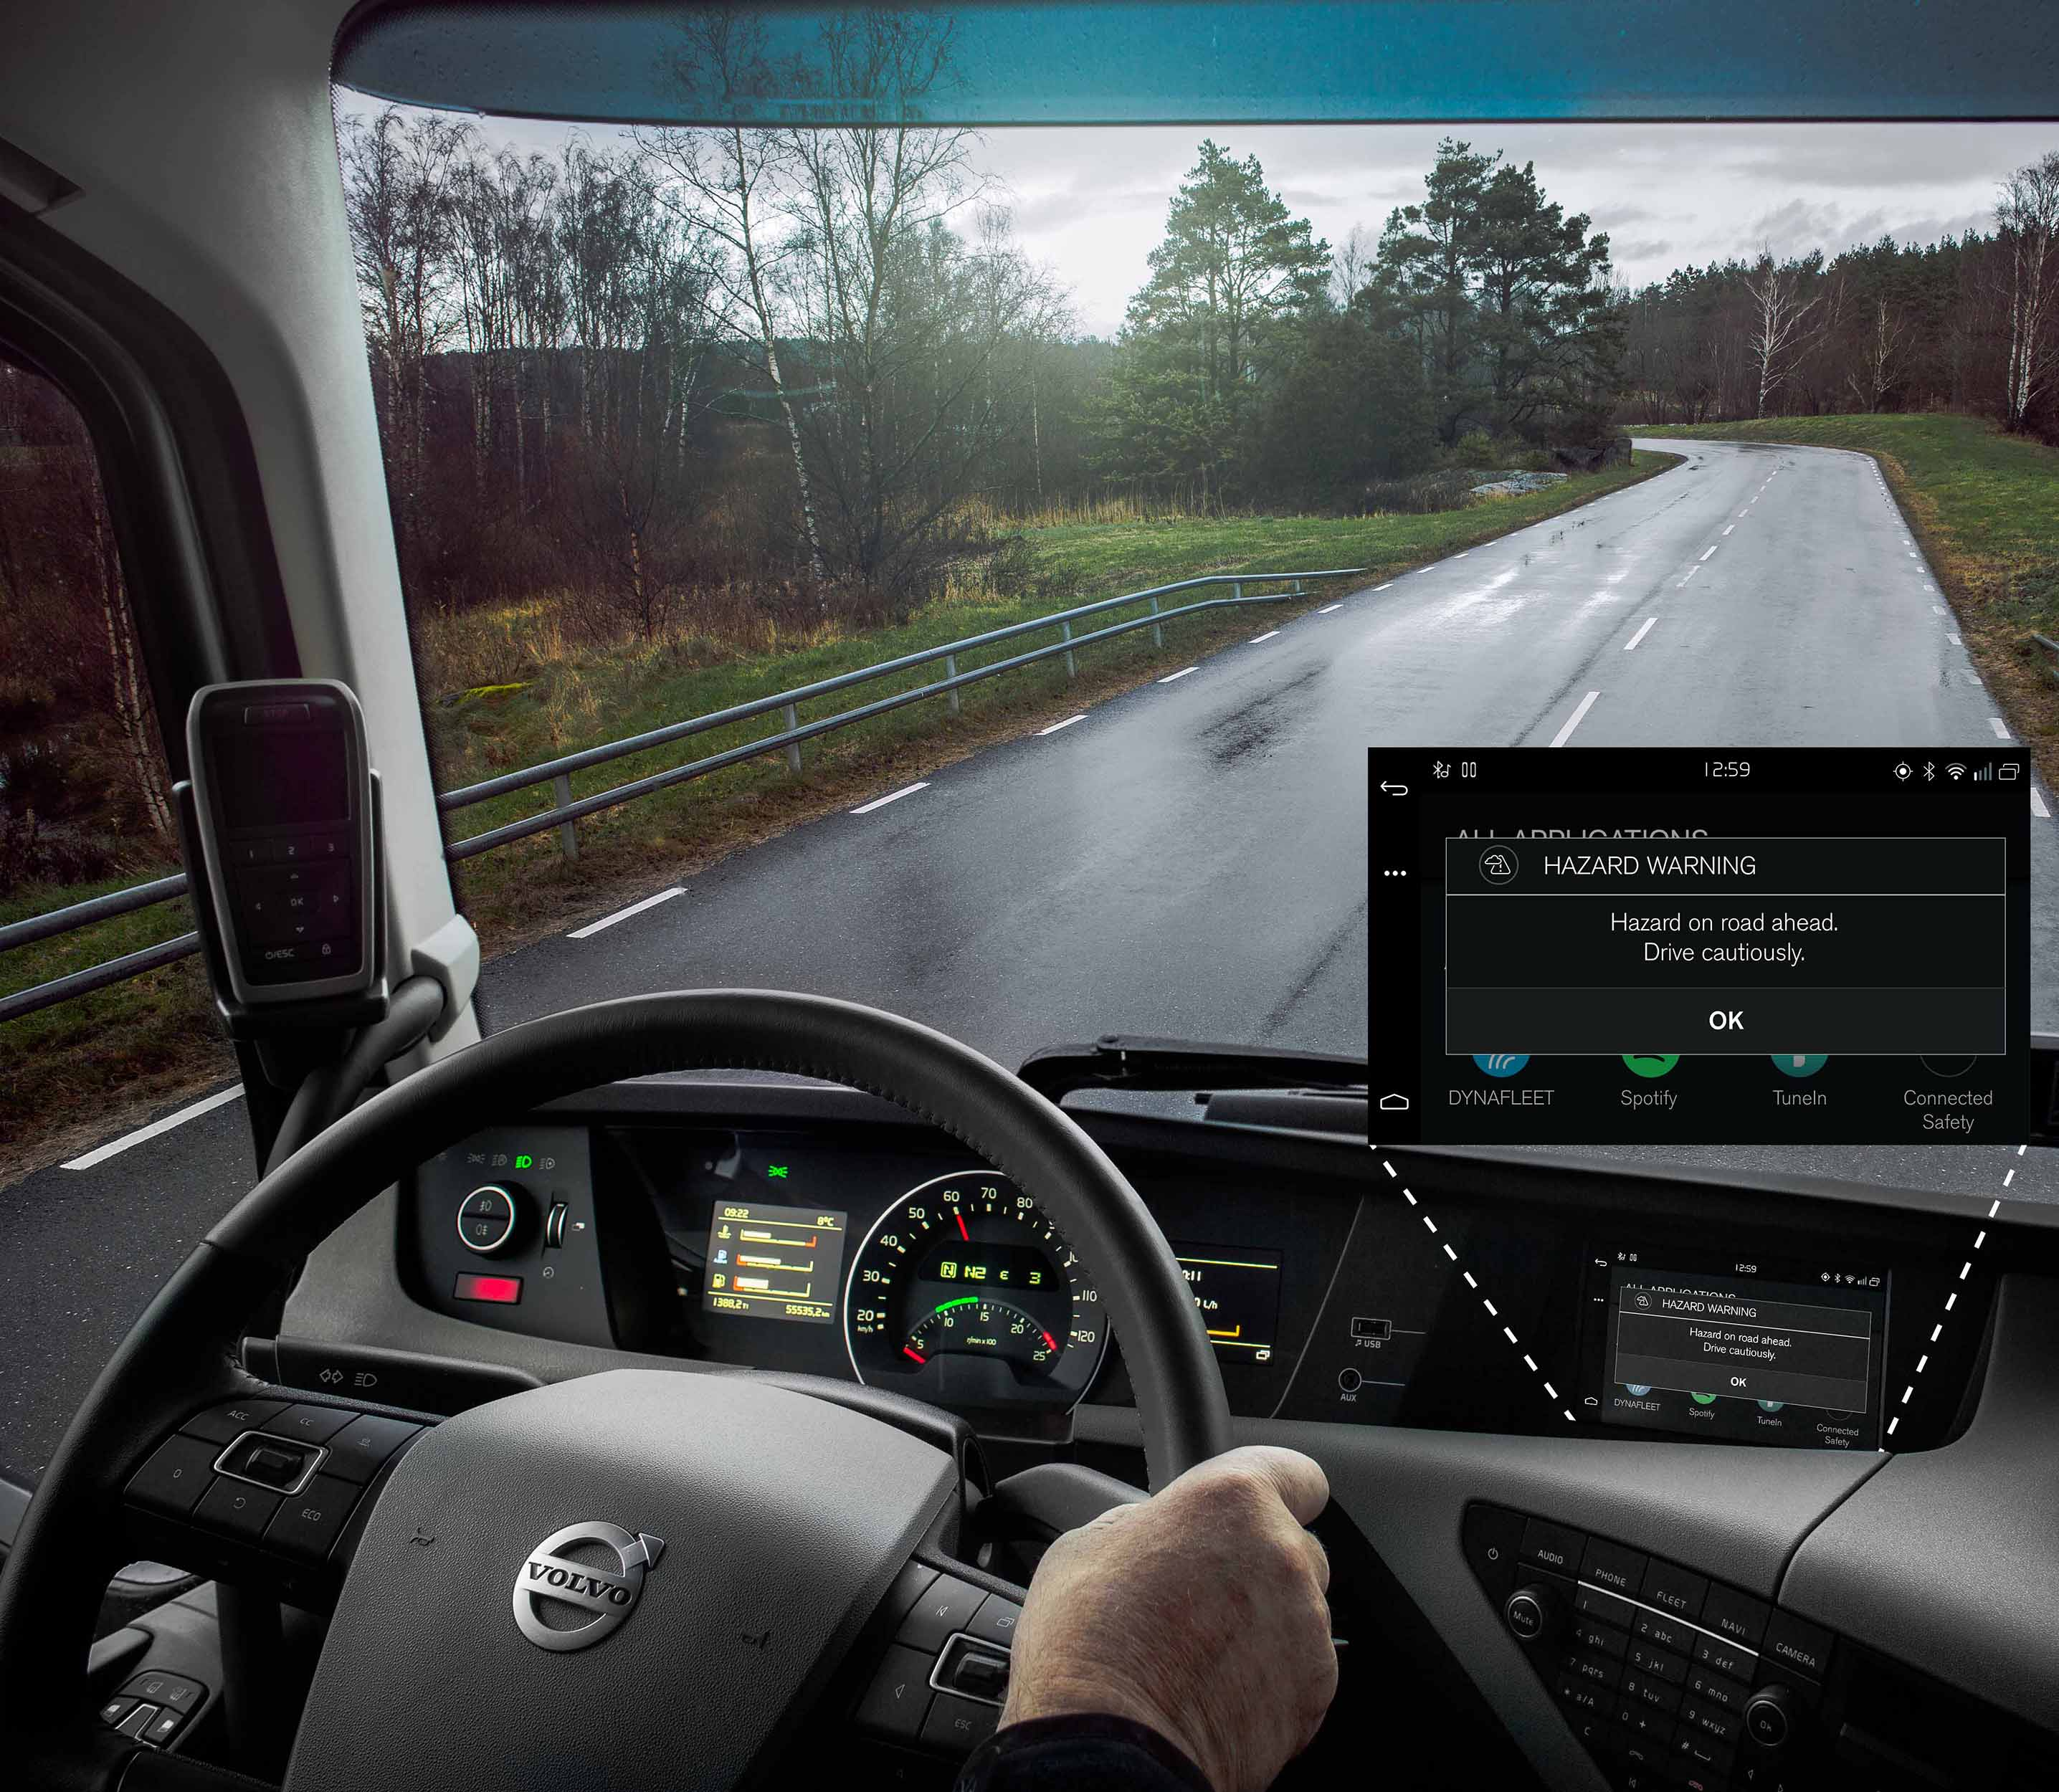 In Norway and Sweden, Volvo cars and Volvo trucks with Connected Safety activated can now alert each other to risky situations on the road